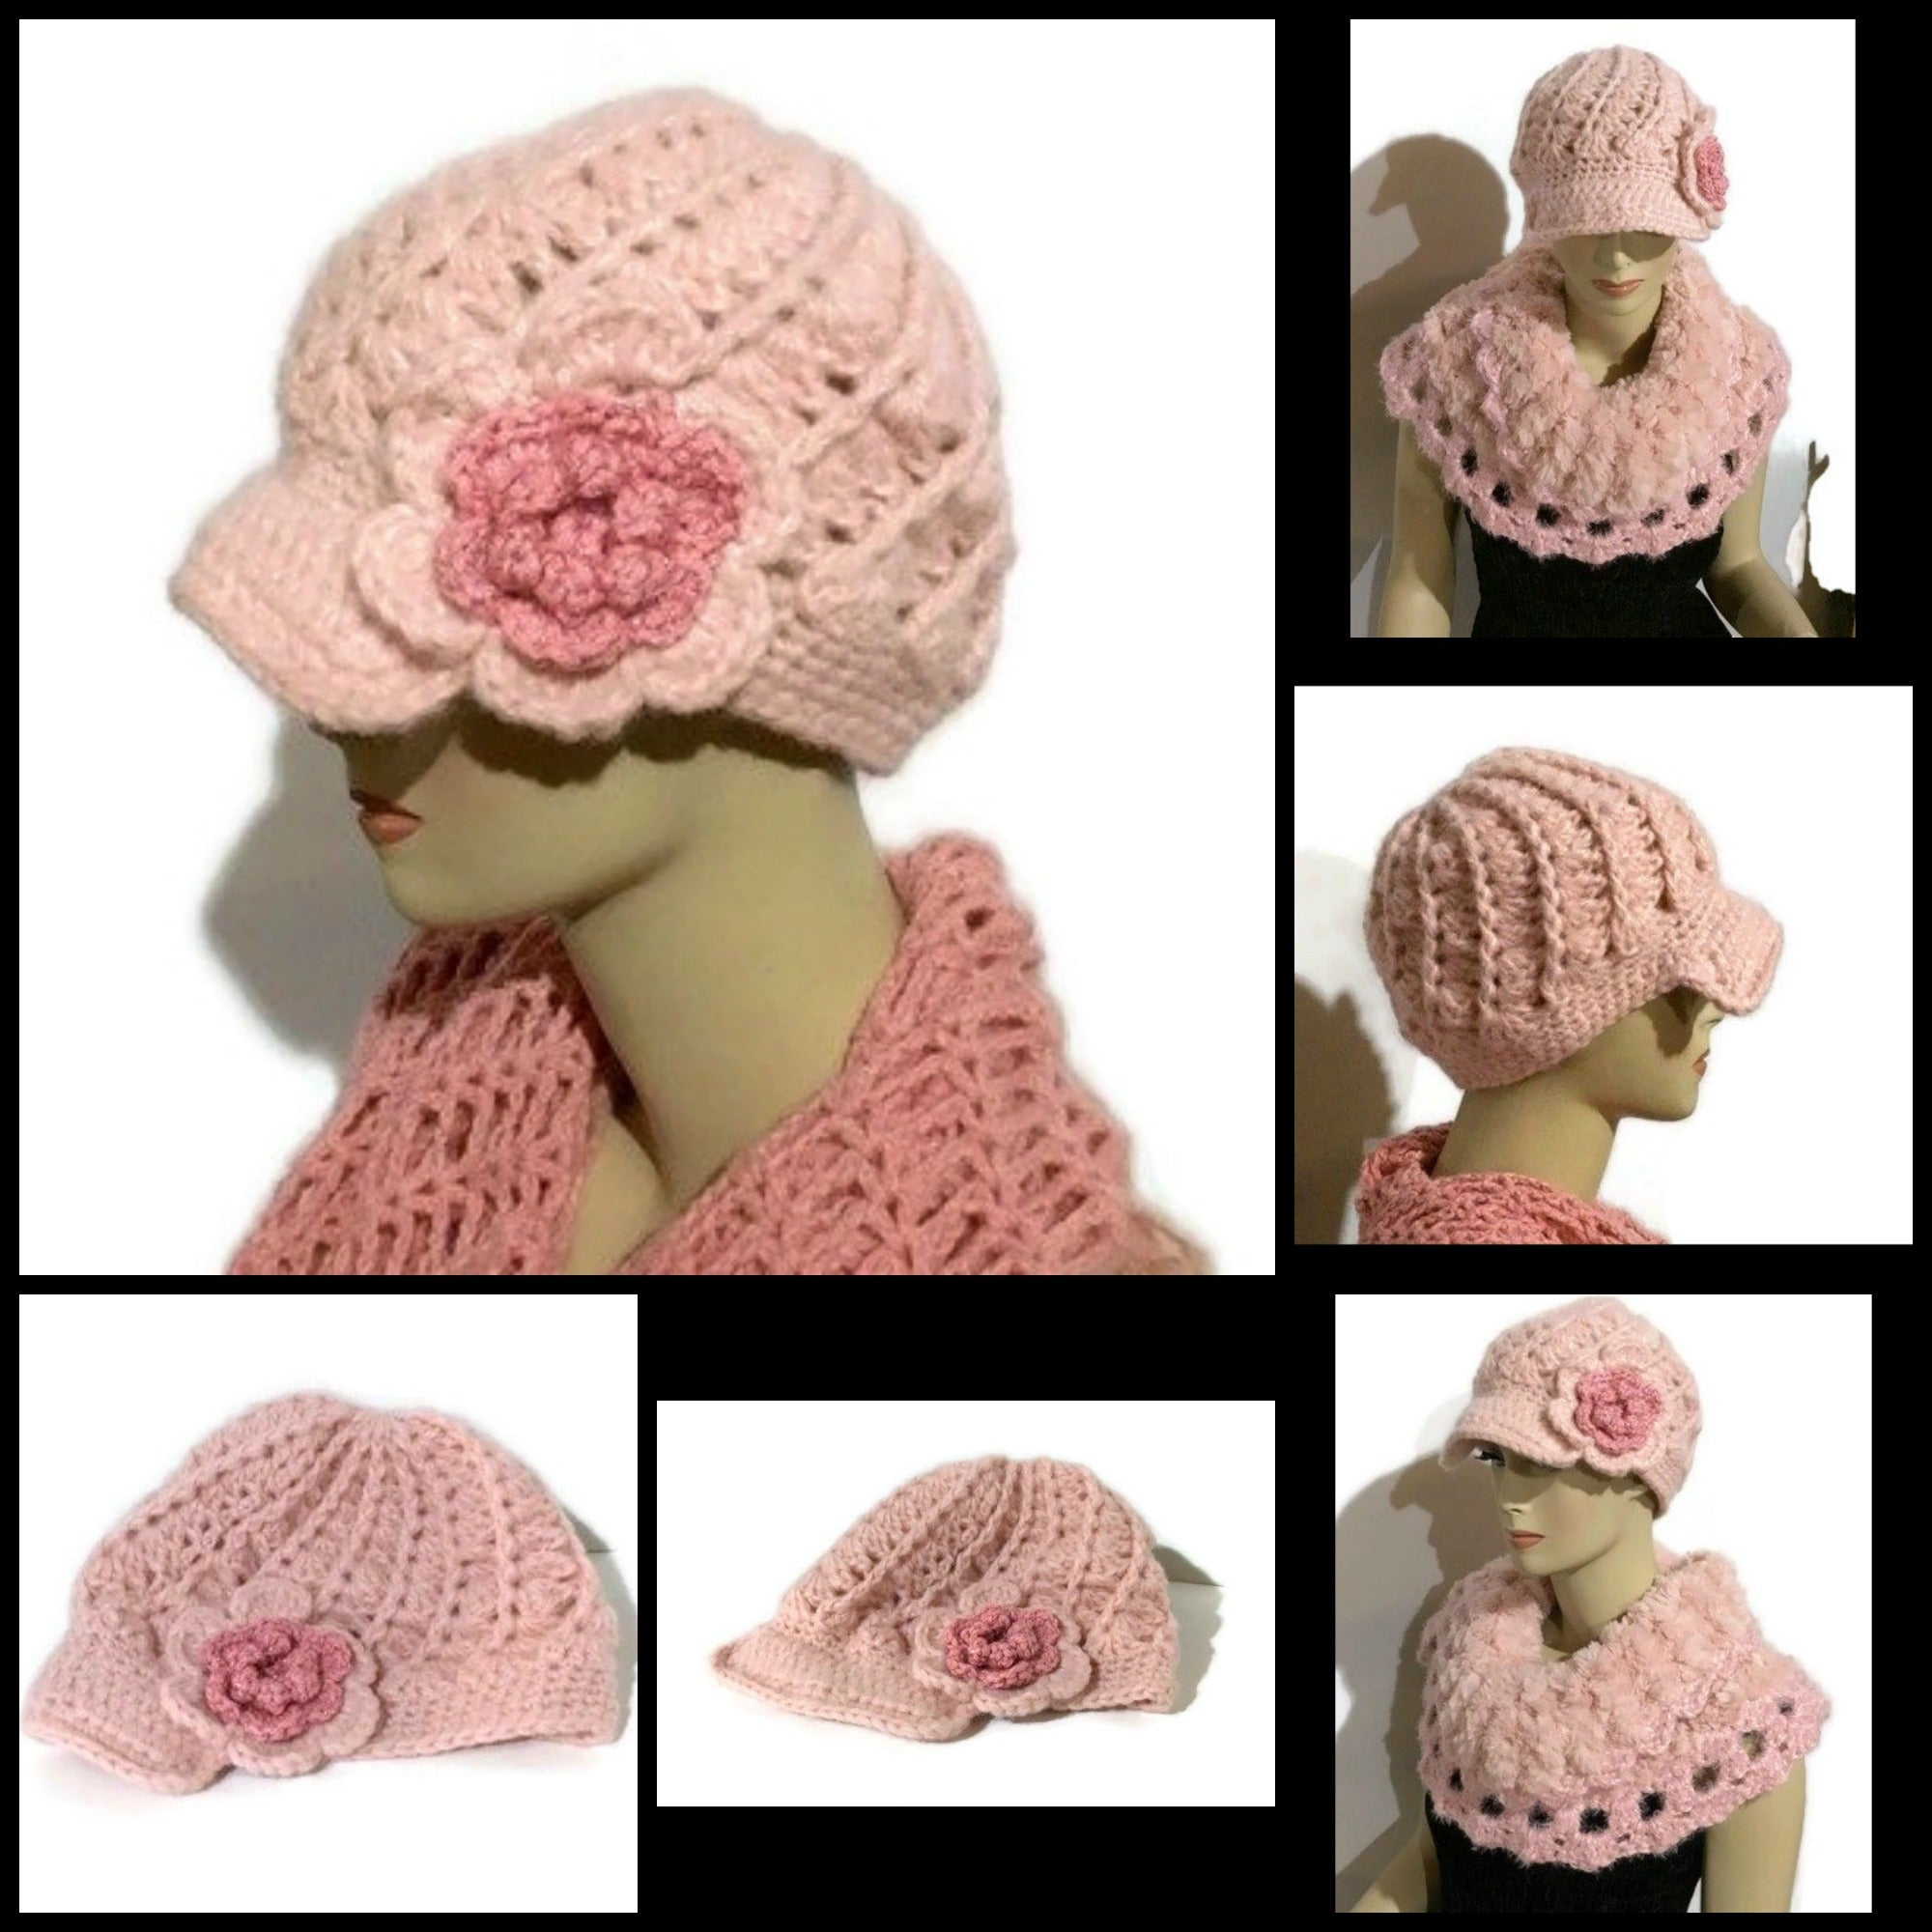 The Crochet Pink Alpaca Hat